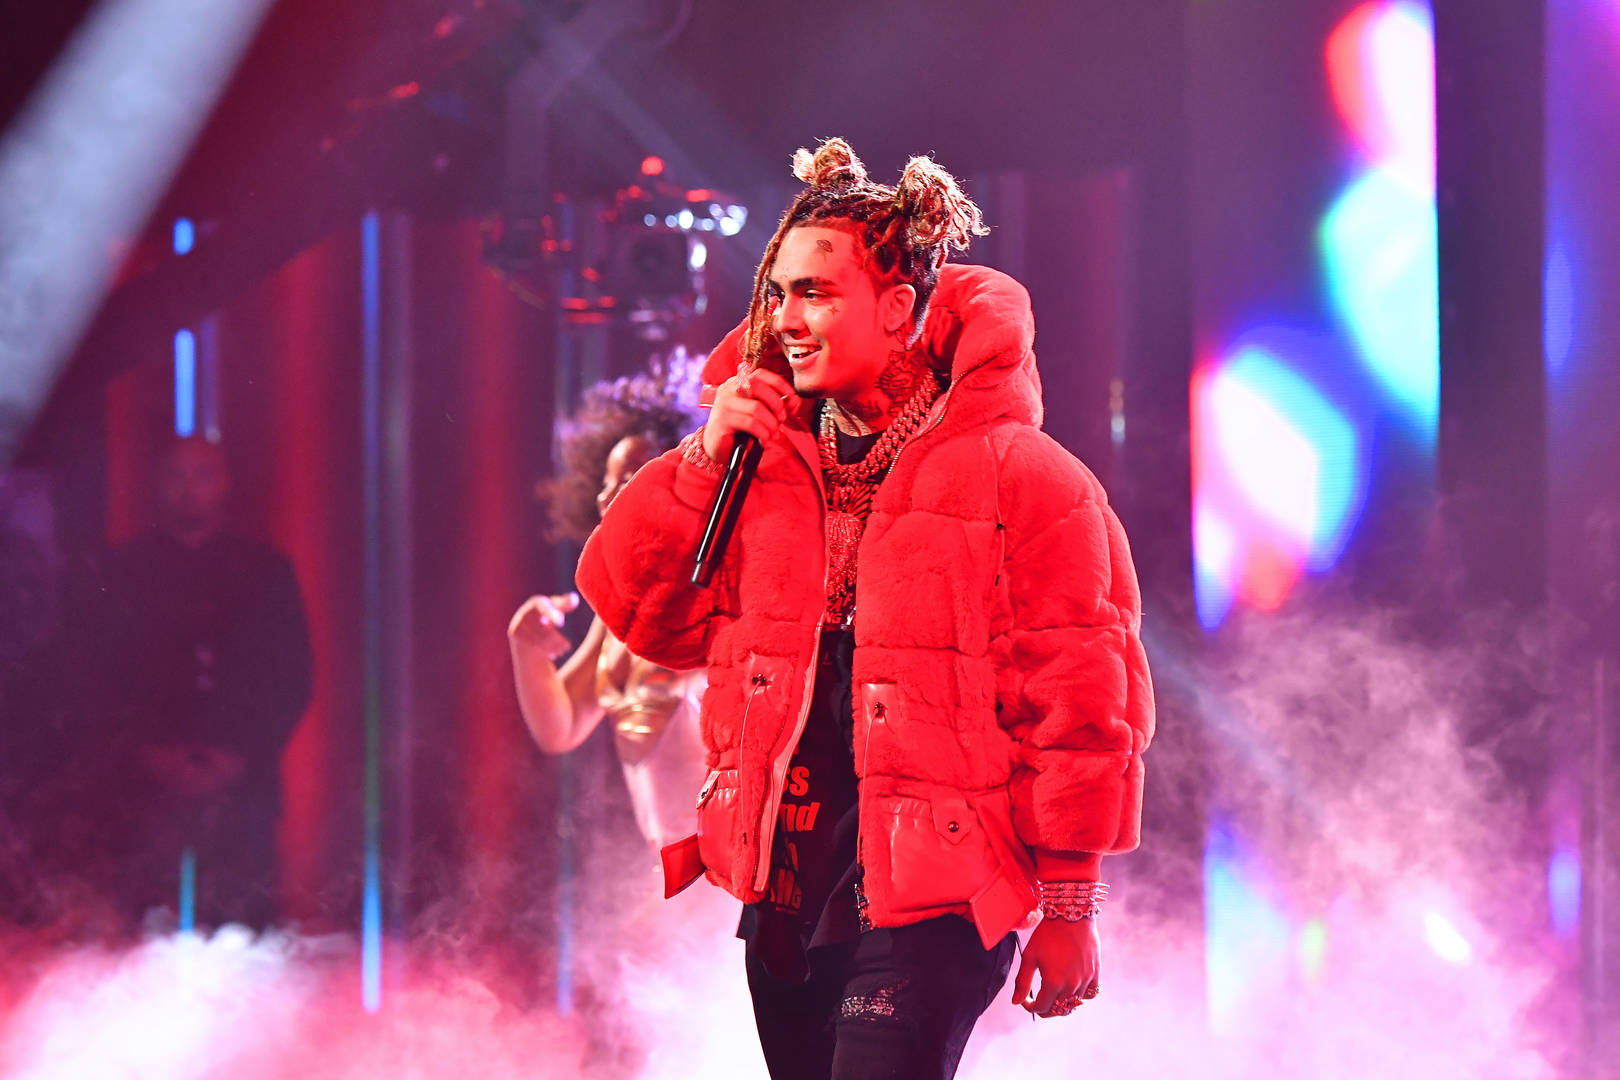 Lil Pump Invades Grammy Awards With Army Of Doppelgängers